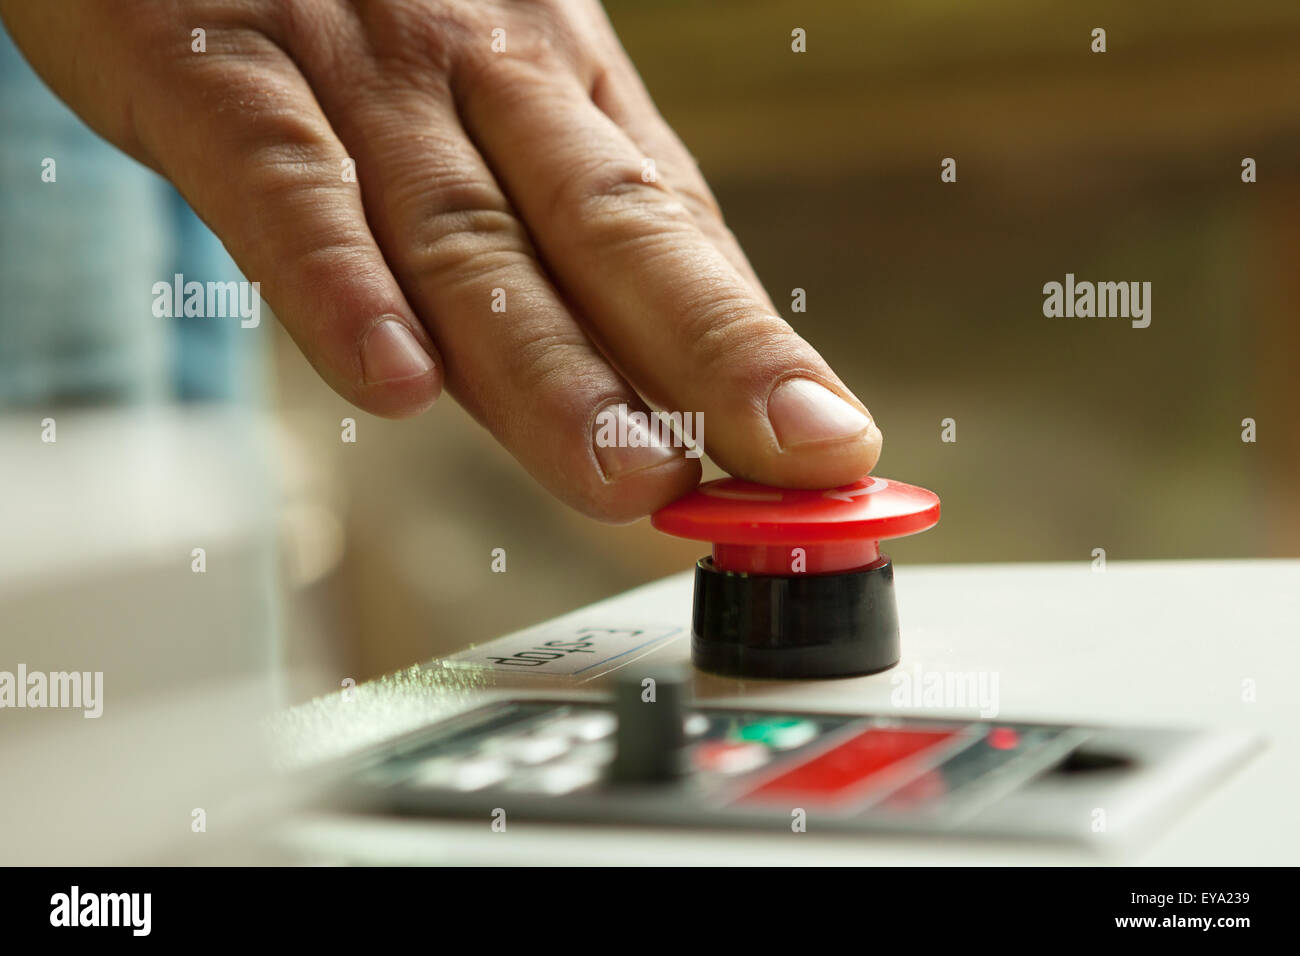 Male hand pushing emergency red stop button. - Stock Image